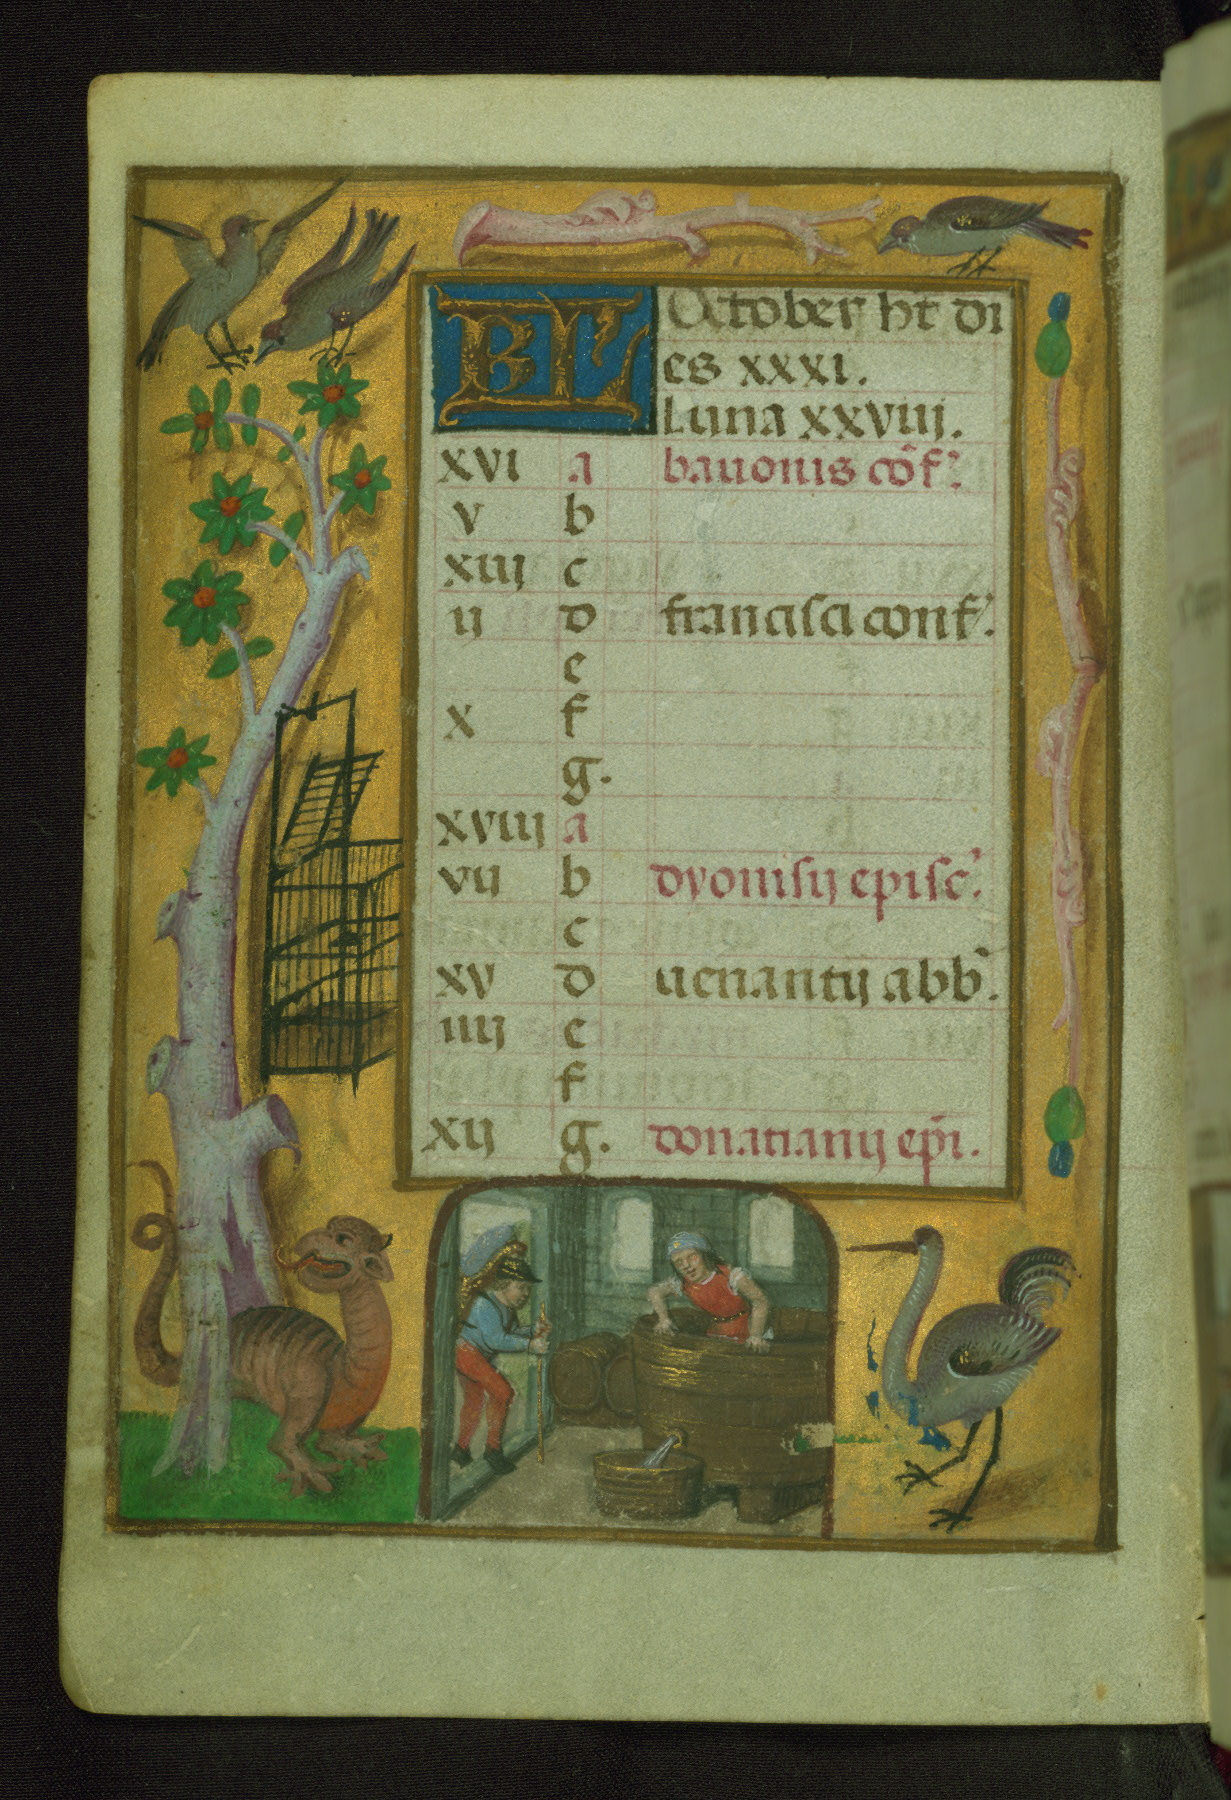 Book of Hours 1500 ca Ms. W.427 Walters Art Museum Baltimore fol. 11v (octobre)